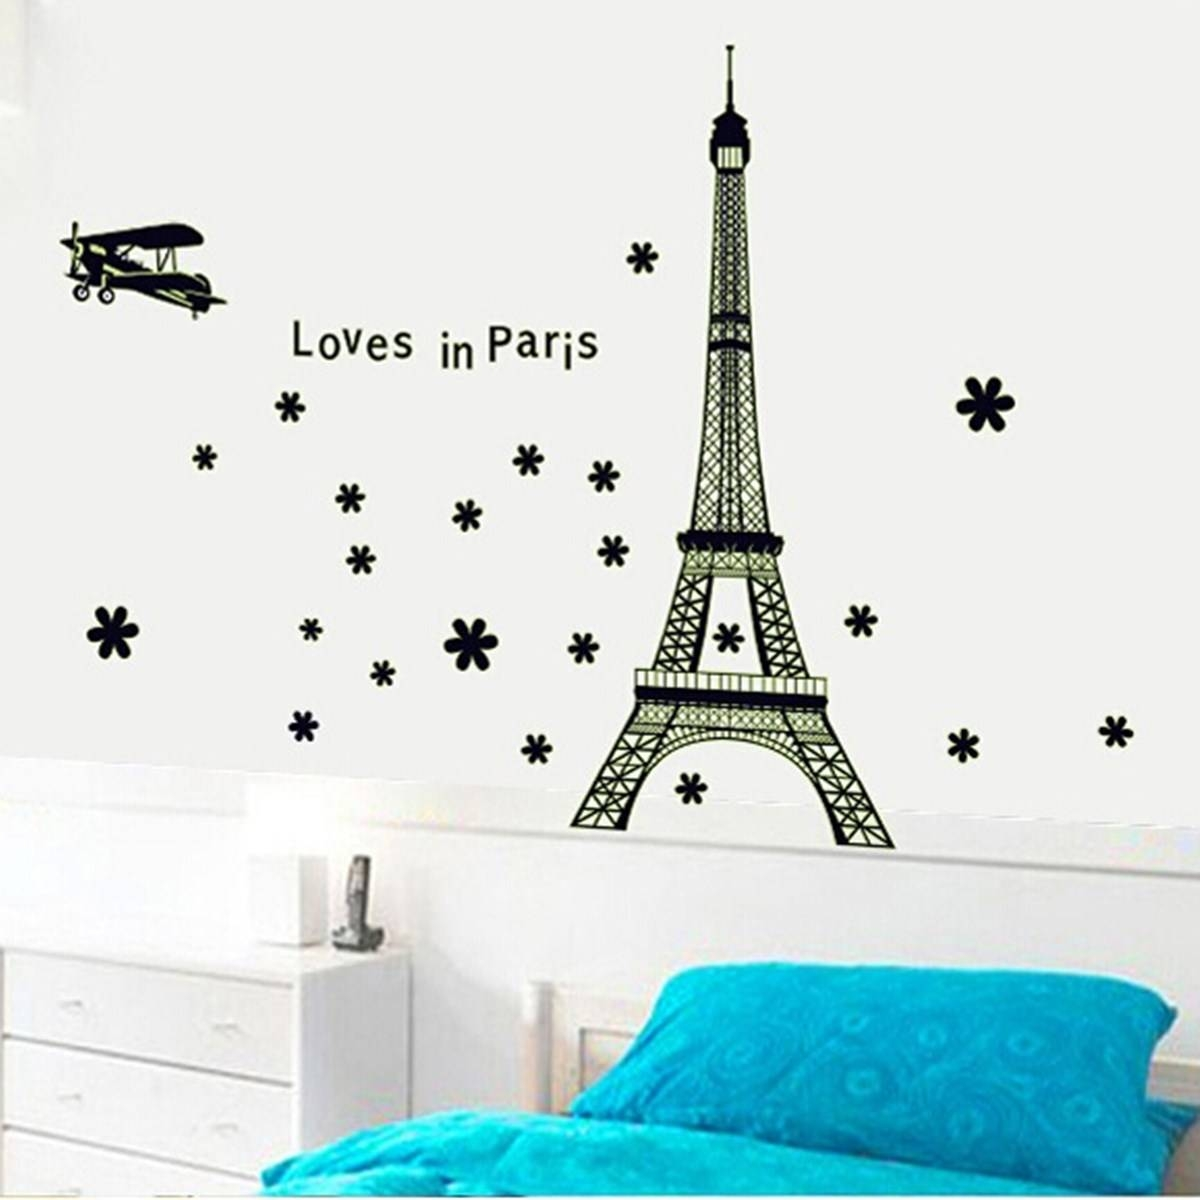 Paris Themed Bedroomcool Paris Themed Bedroom With Eiffel Tower Intended For Recent Paris Themed Stickers (View 11 of 15)